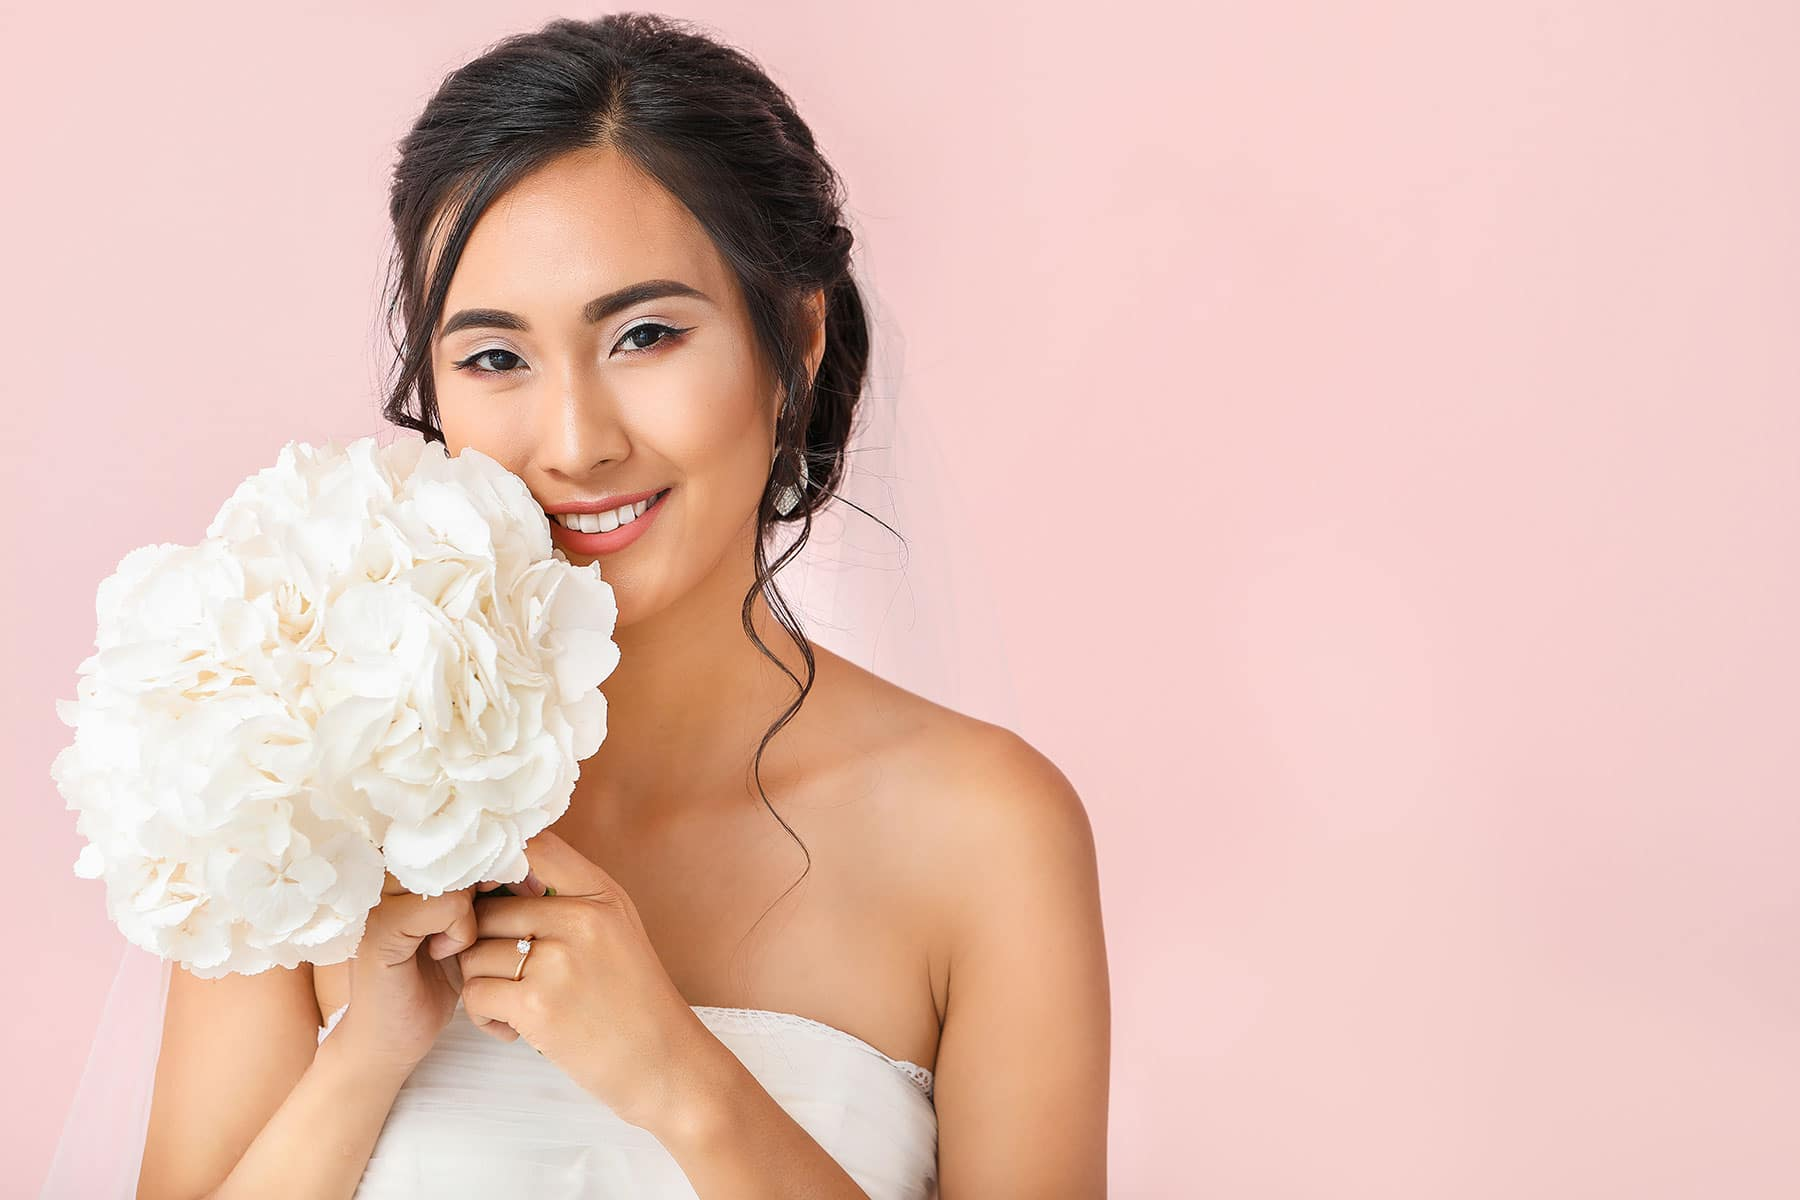 This section of the site is about bridal makeup services